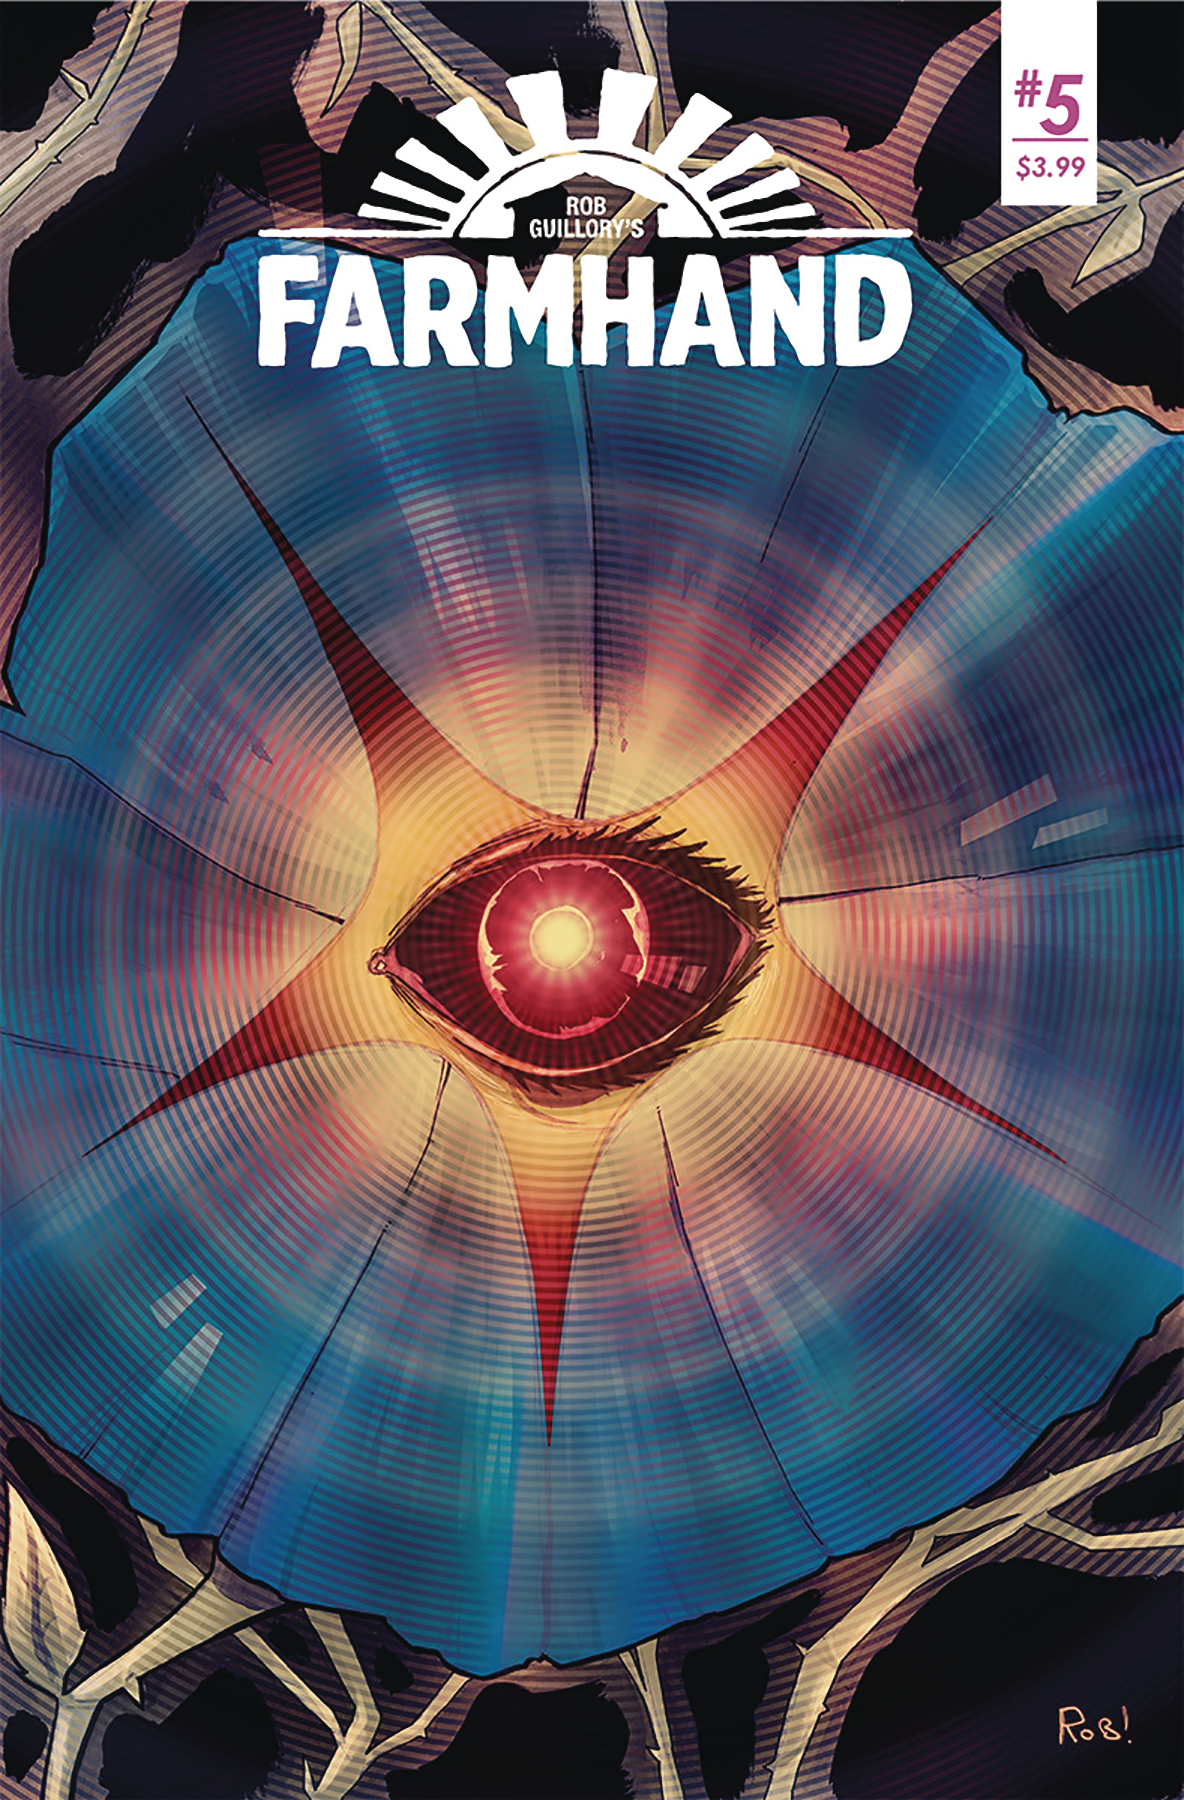 Farmhand #5  is out 11/7.